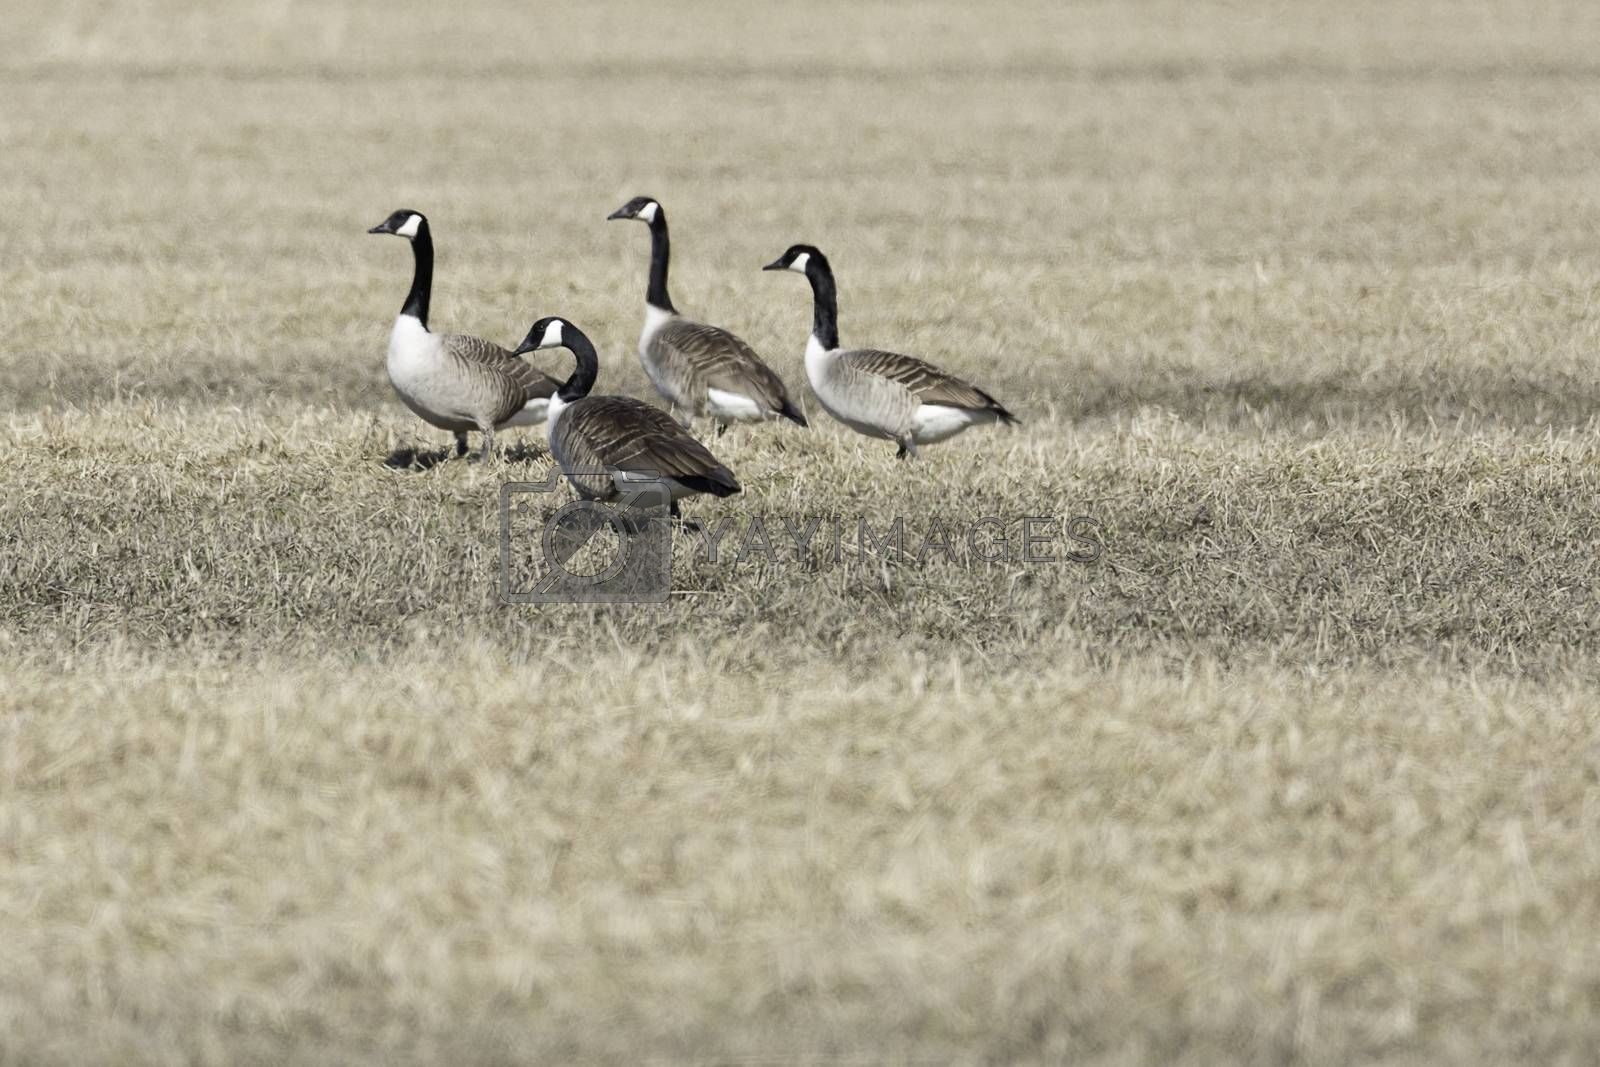 Canada Geese in Cultivated Field.